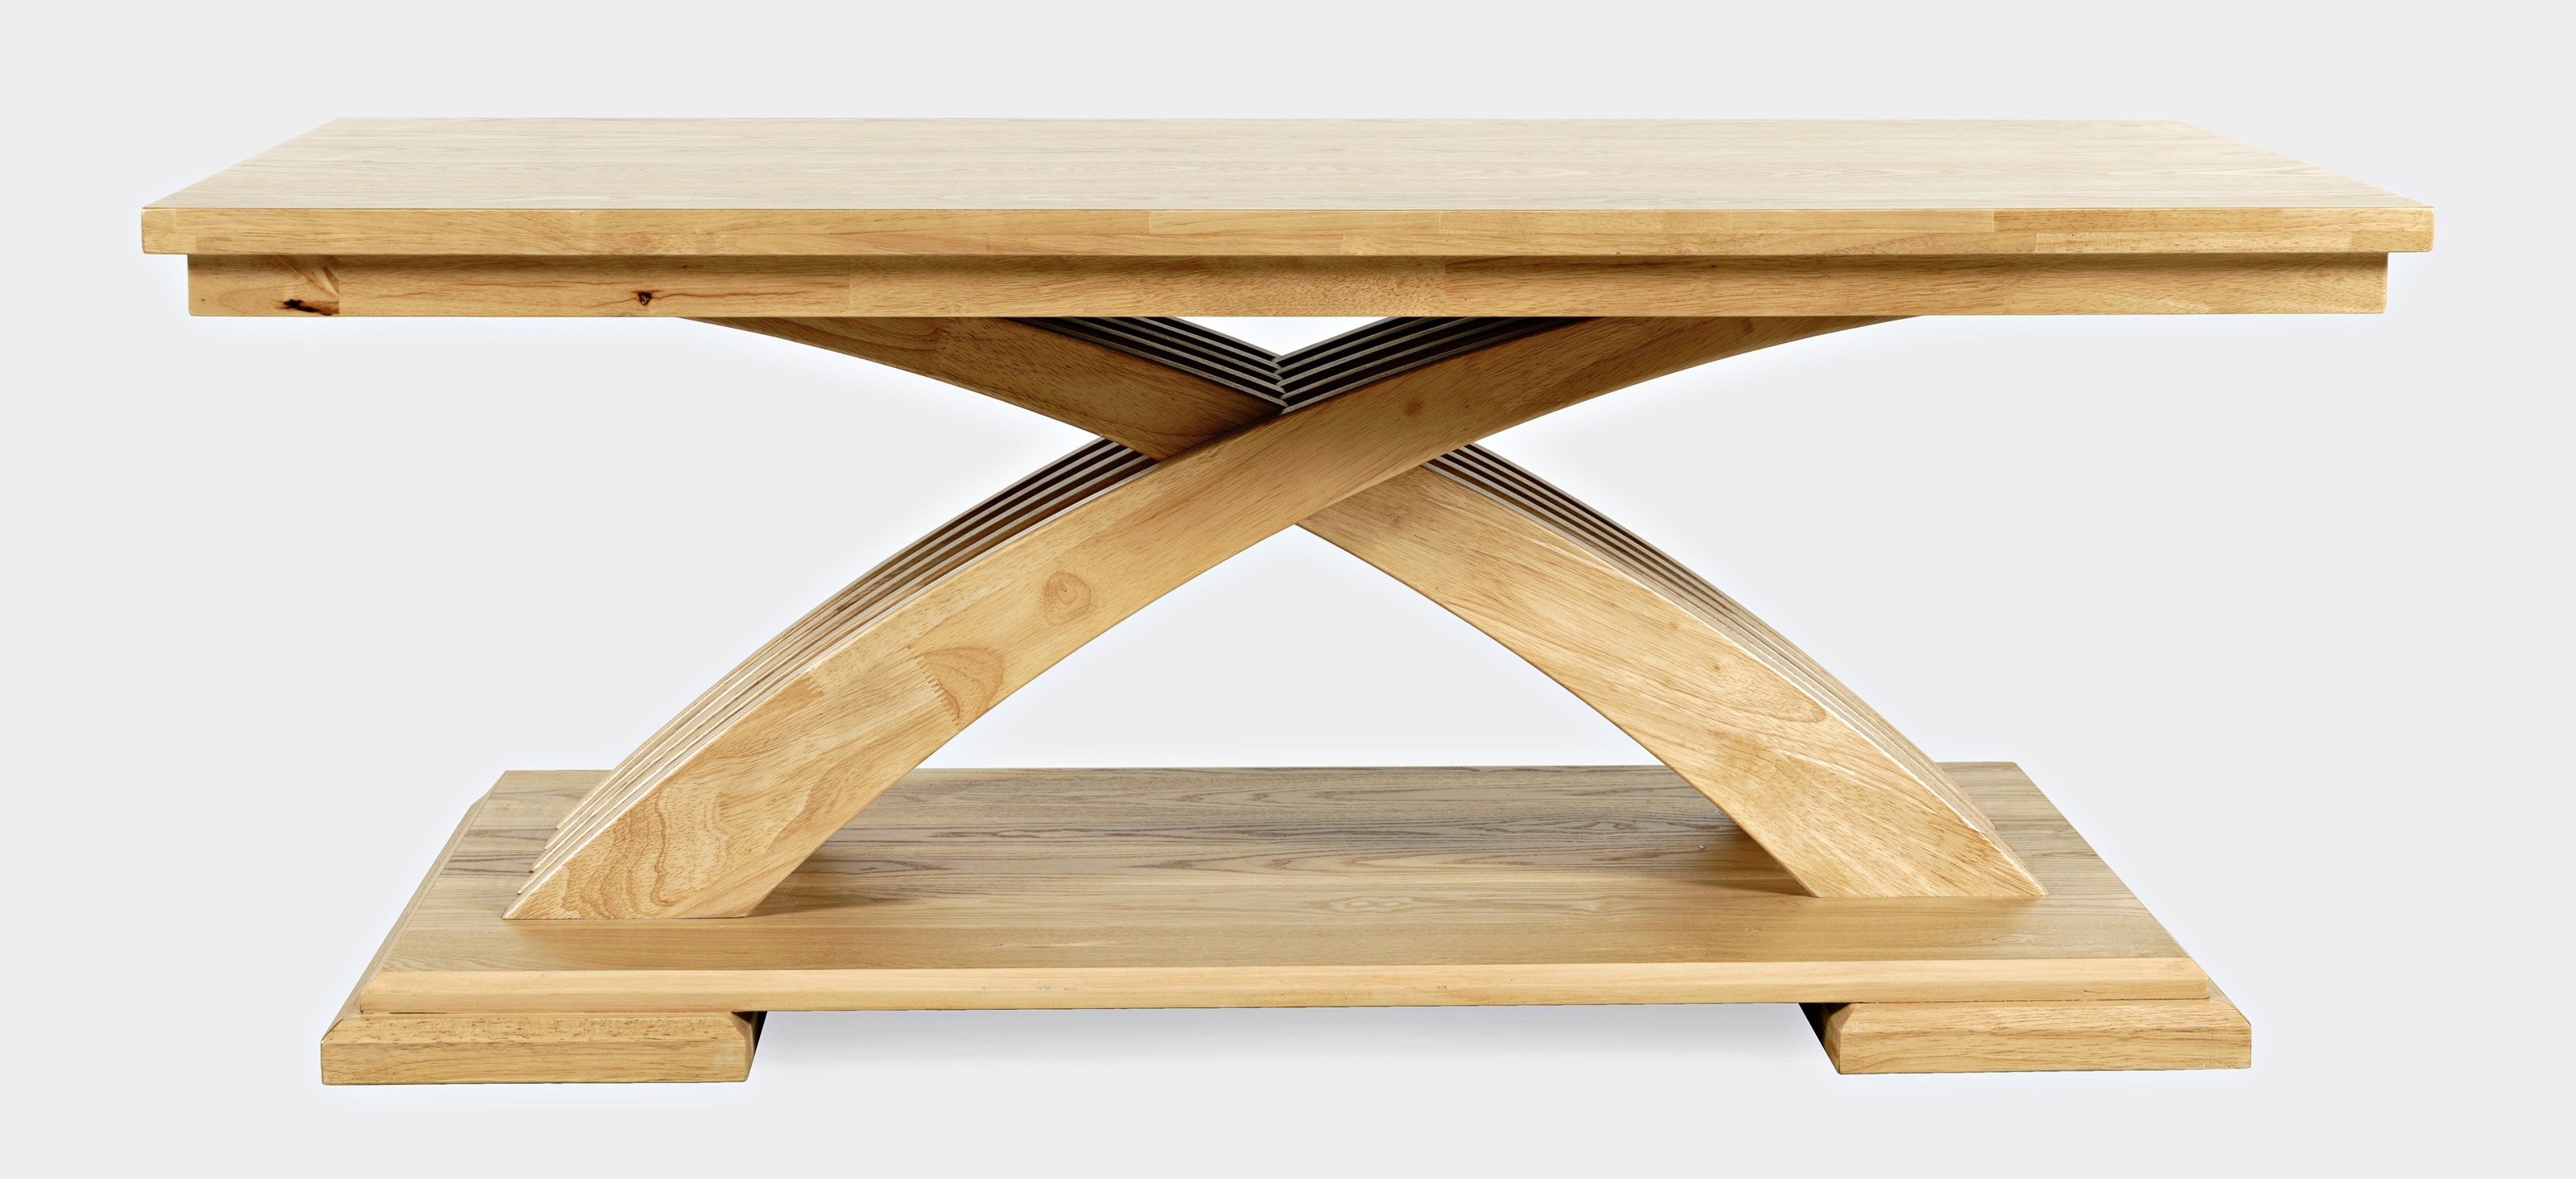 Anthology Castered Coffee Table - Warm Ash by Jofran at Home Furnishings Direct